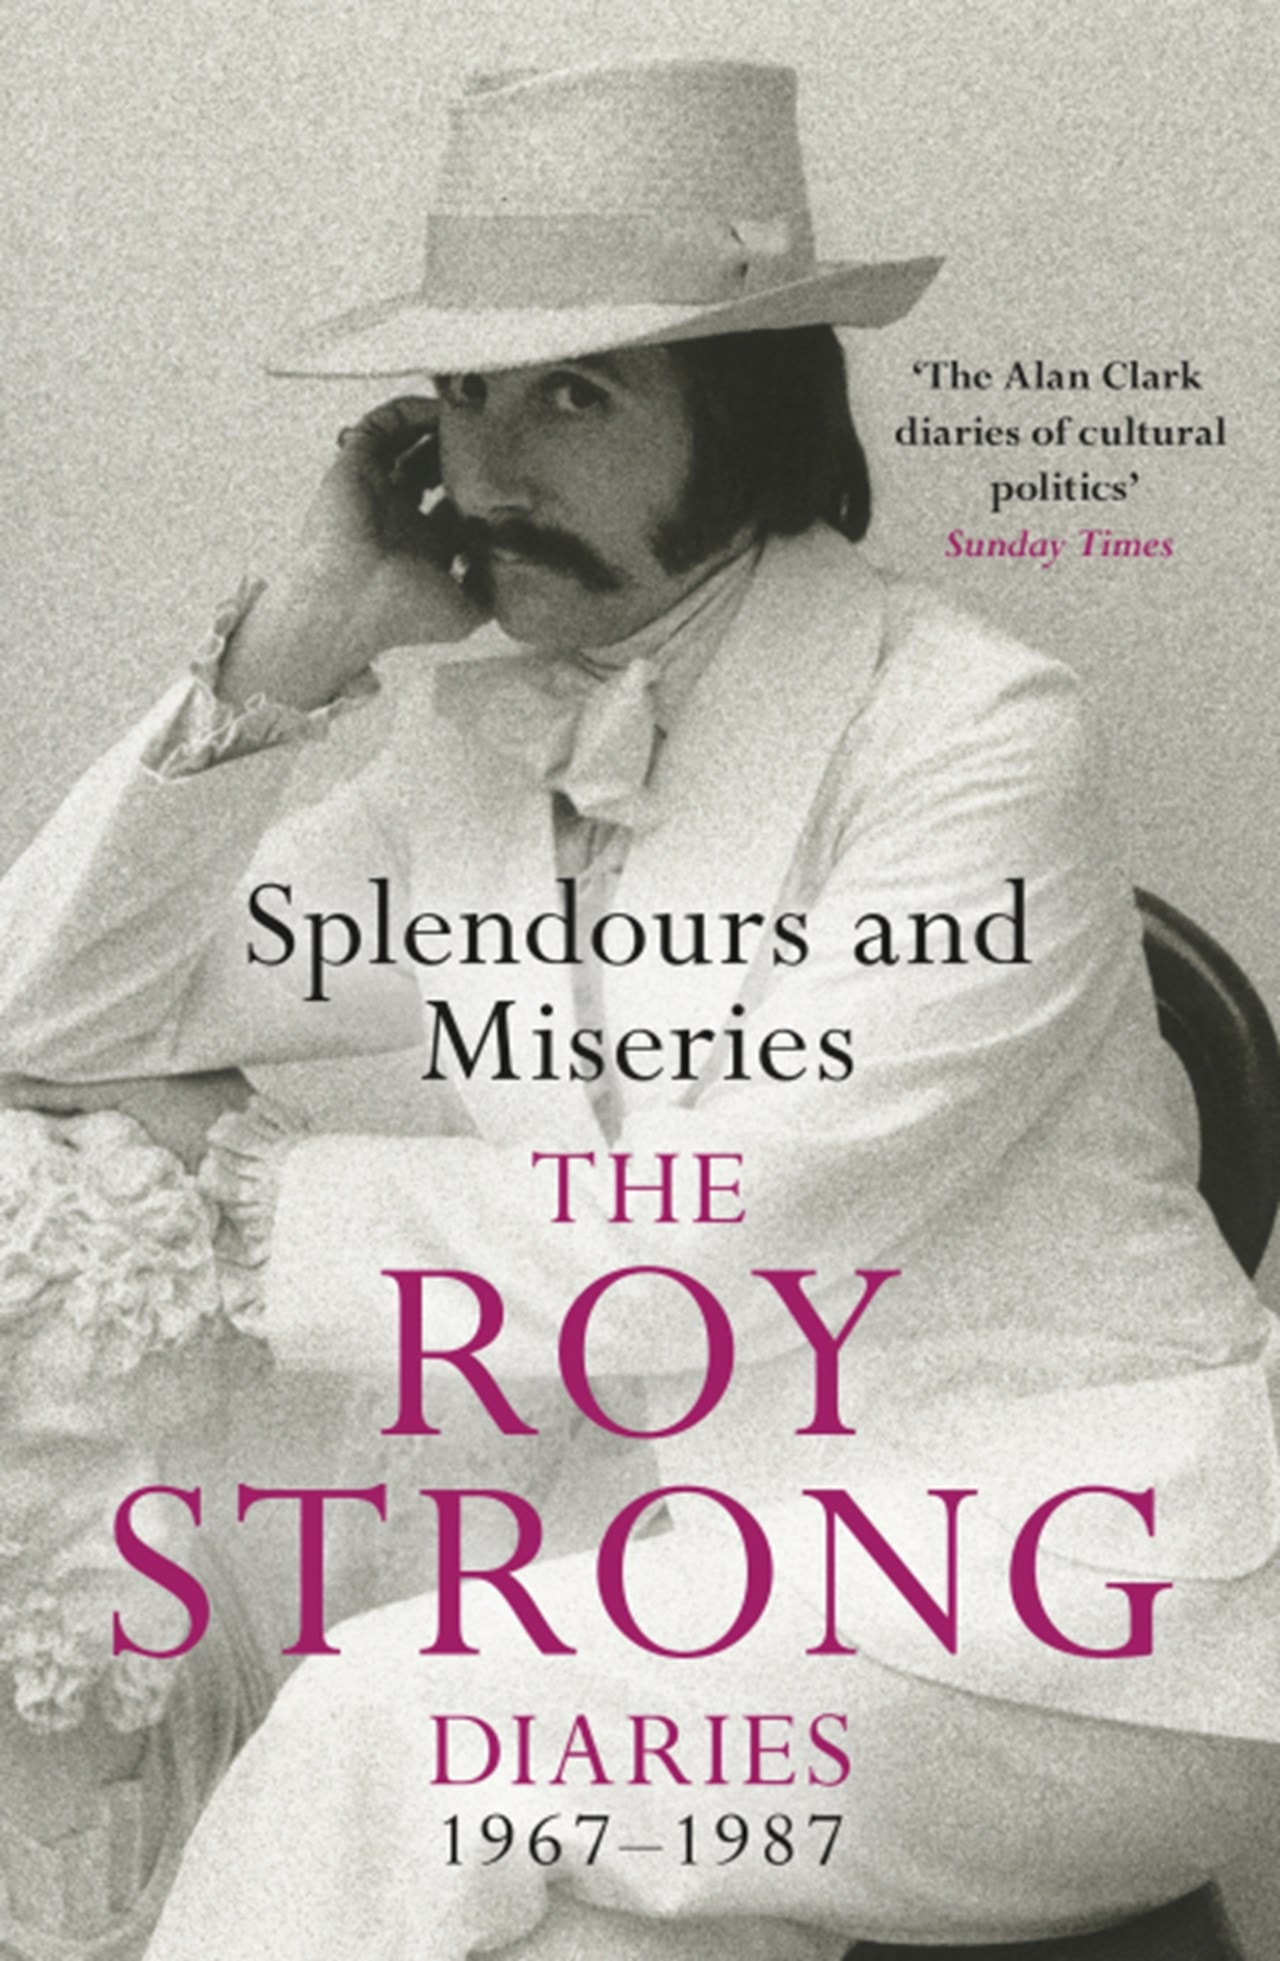 Splendours and Miseries:  The Roy Strong Diaries, 1967-87 (Vol 1) - 1